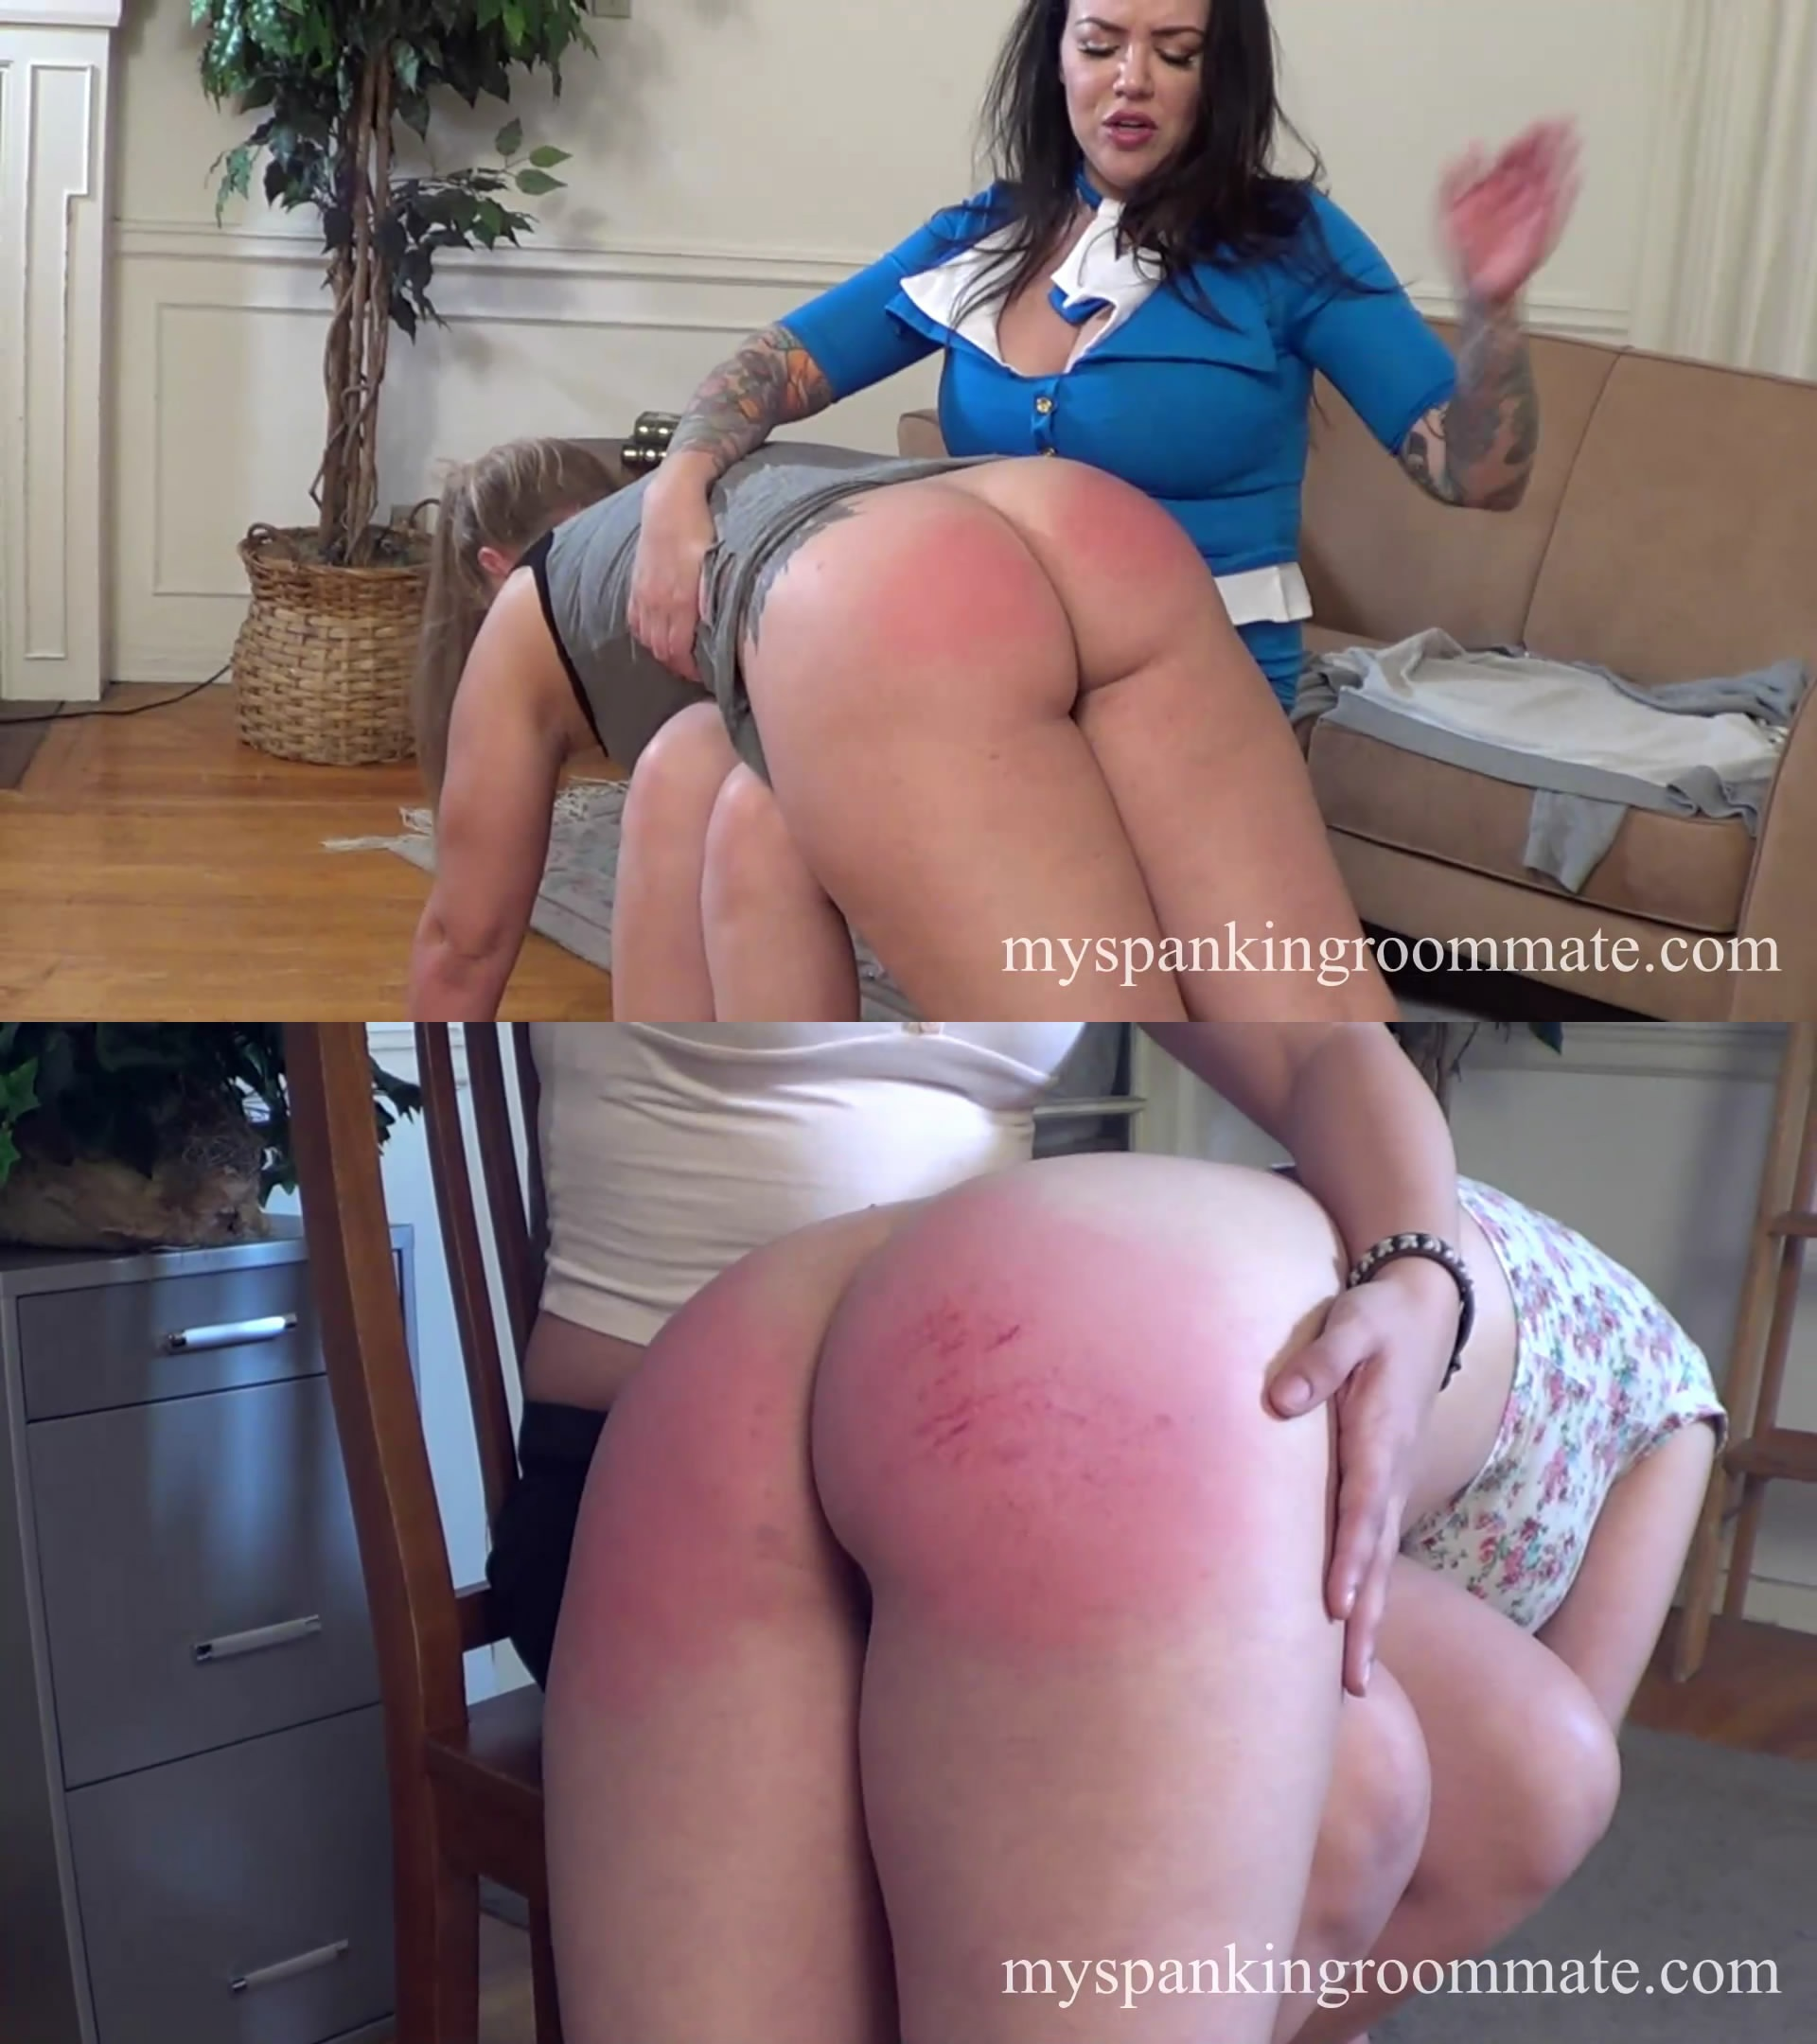 My Spanking Roommate – MP4/Full HD – Kay Richards, Madison Martin, Emily Parker, Adriana Evans – Episode 300: Madison and Kay Both Get Spanked